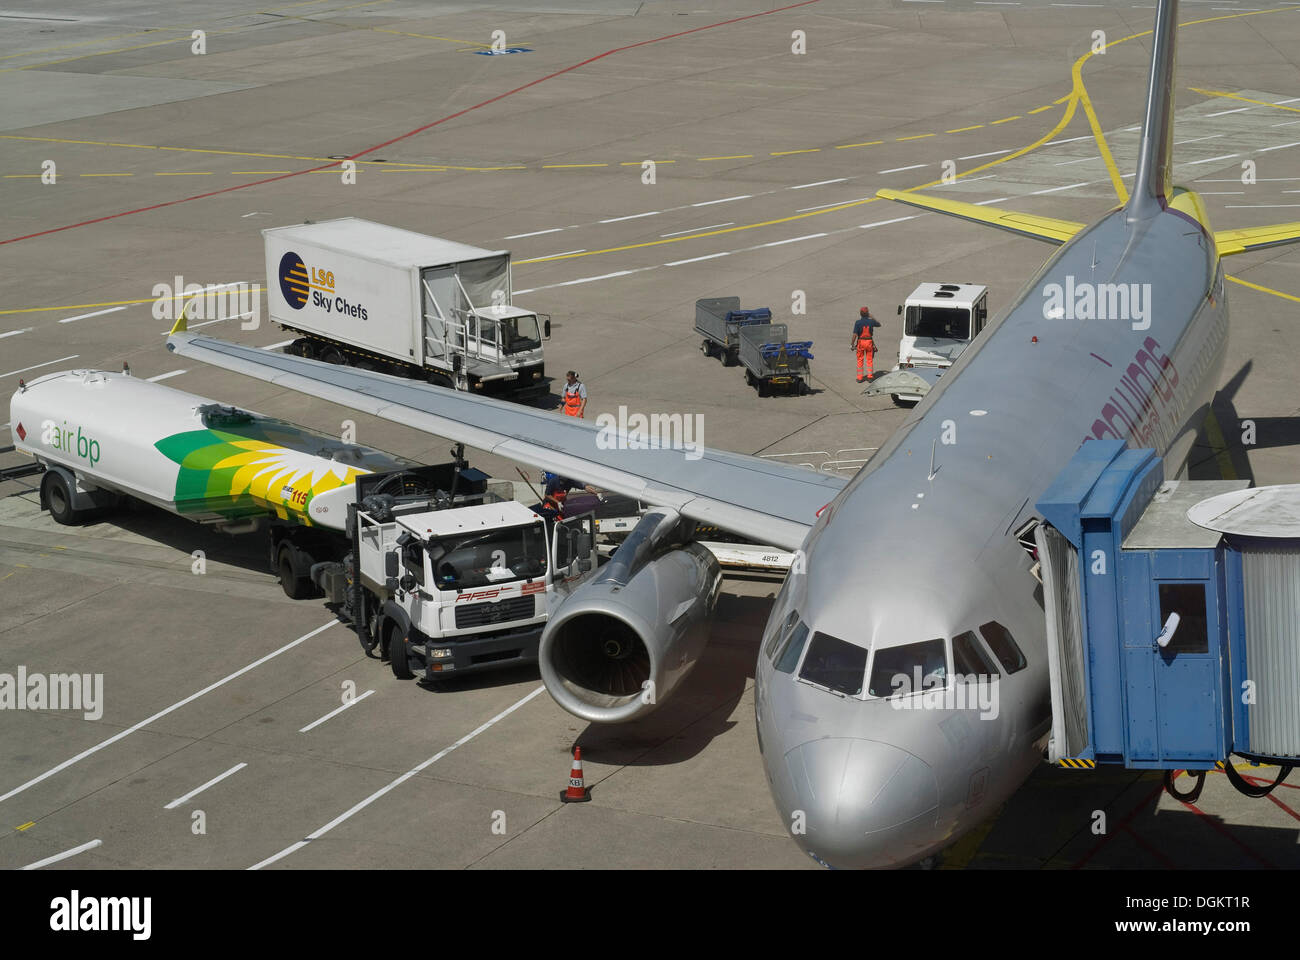 Airplane connected to a gangway, being refueled with service vehicles, apron, Cologne Bonn Airport, North Rhine-Westphalia - Stock Image